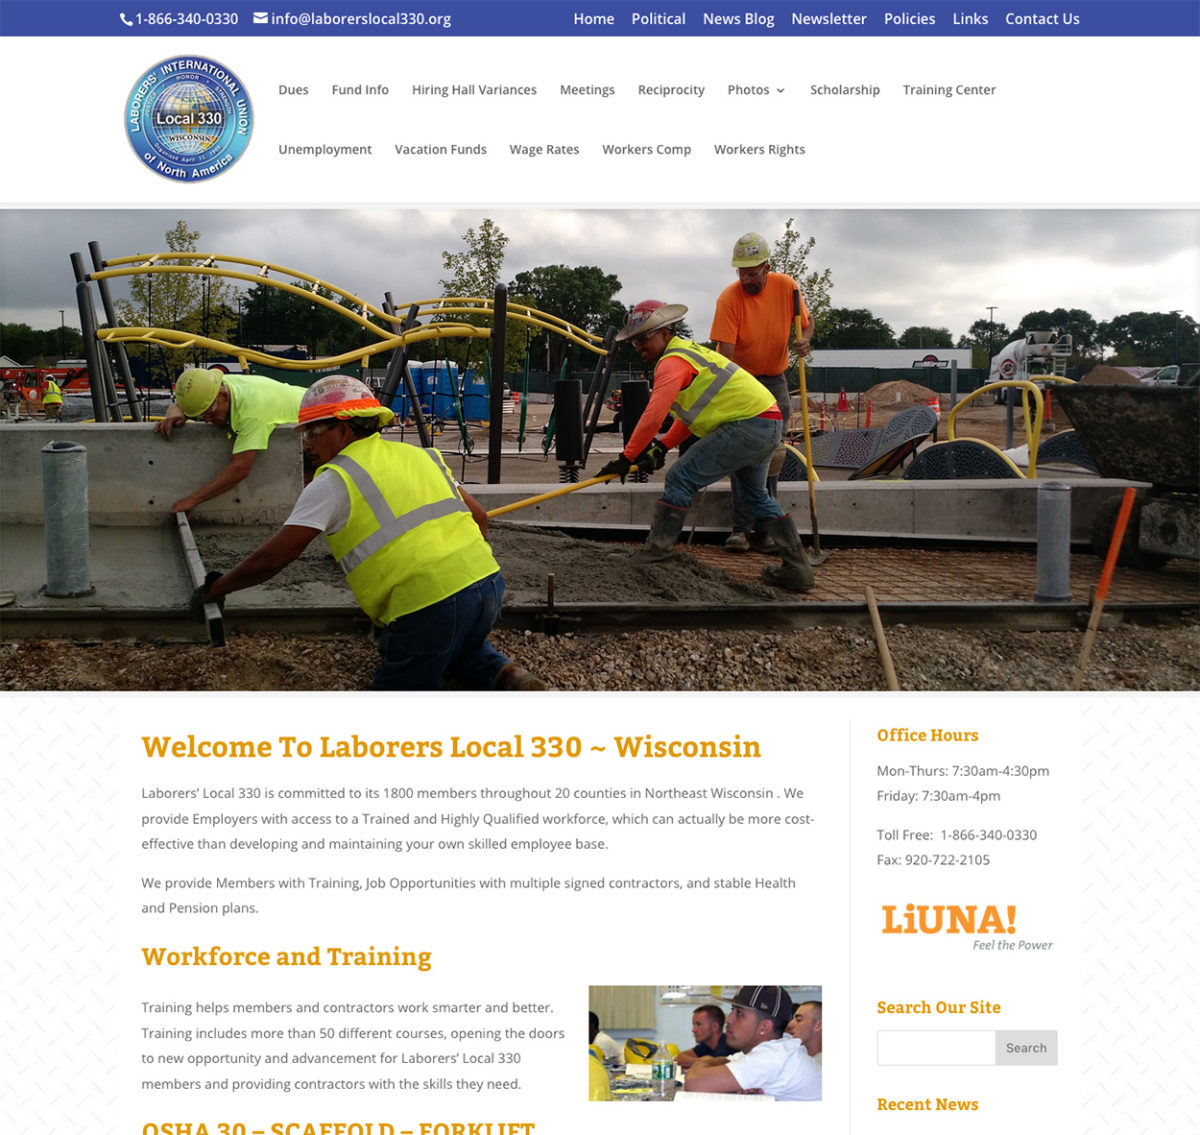 Laborers' Local 330, Wisconsin,Website Design,SEO,Commercial Drone Pilots,LUNA,Unions in Wisconsin